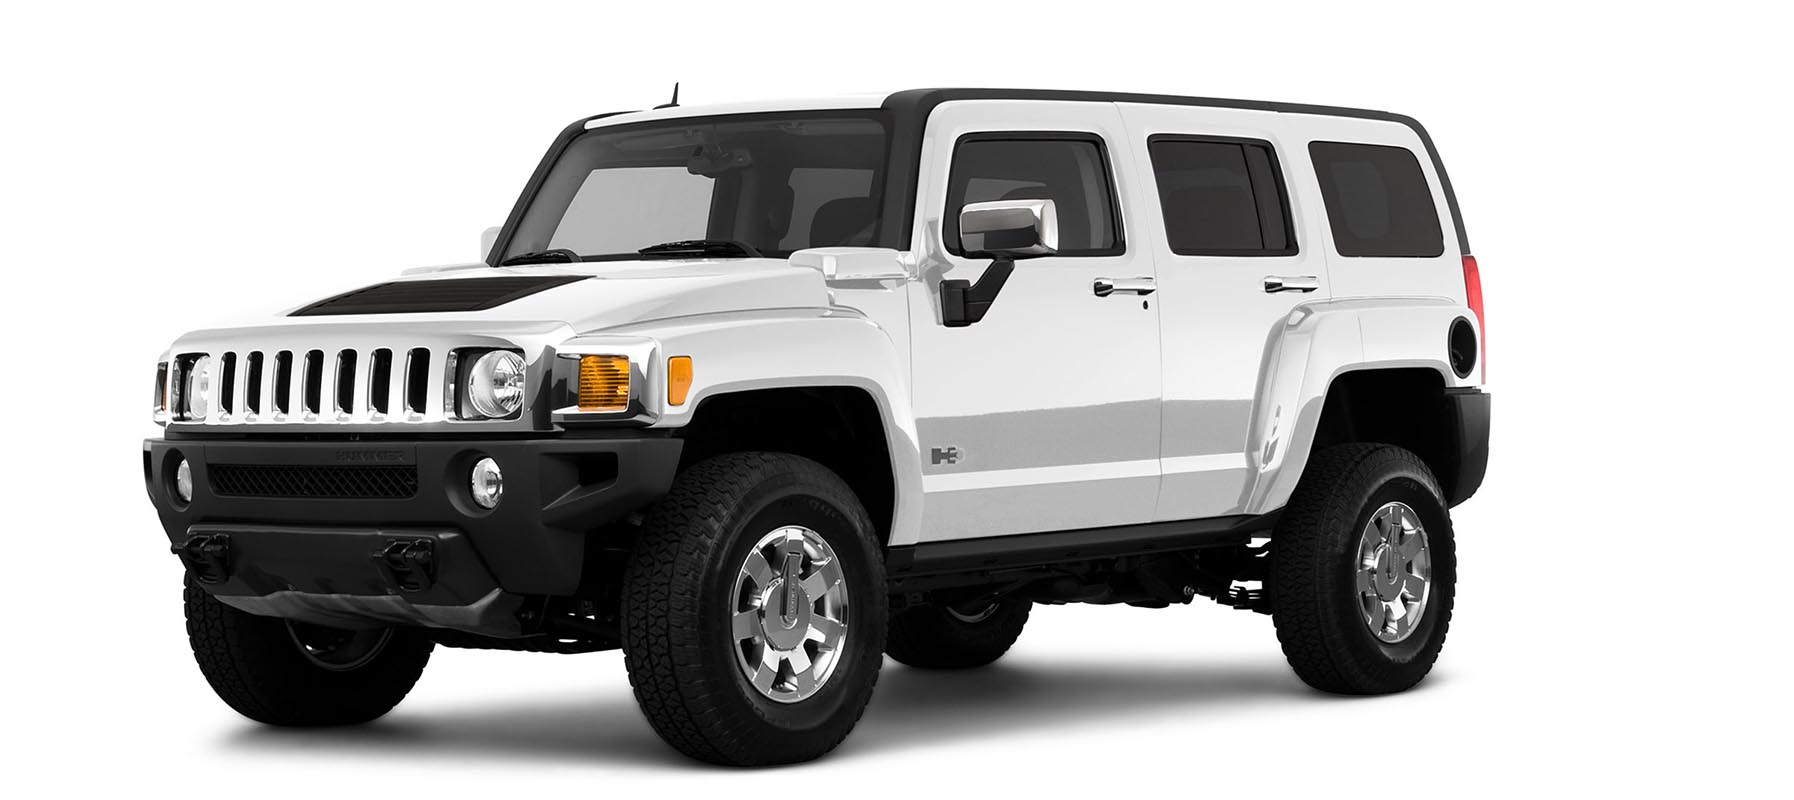 Hummer Service By Top Rated Mechanics - YourMechanic | how much does a hummer car cost